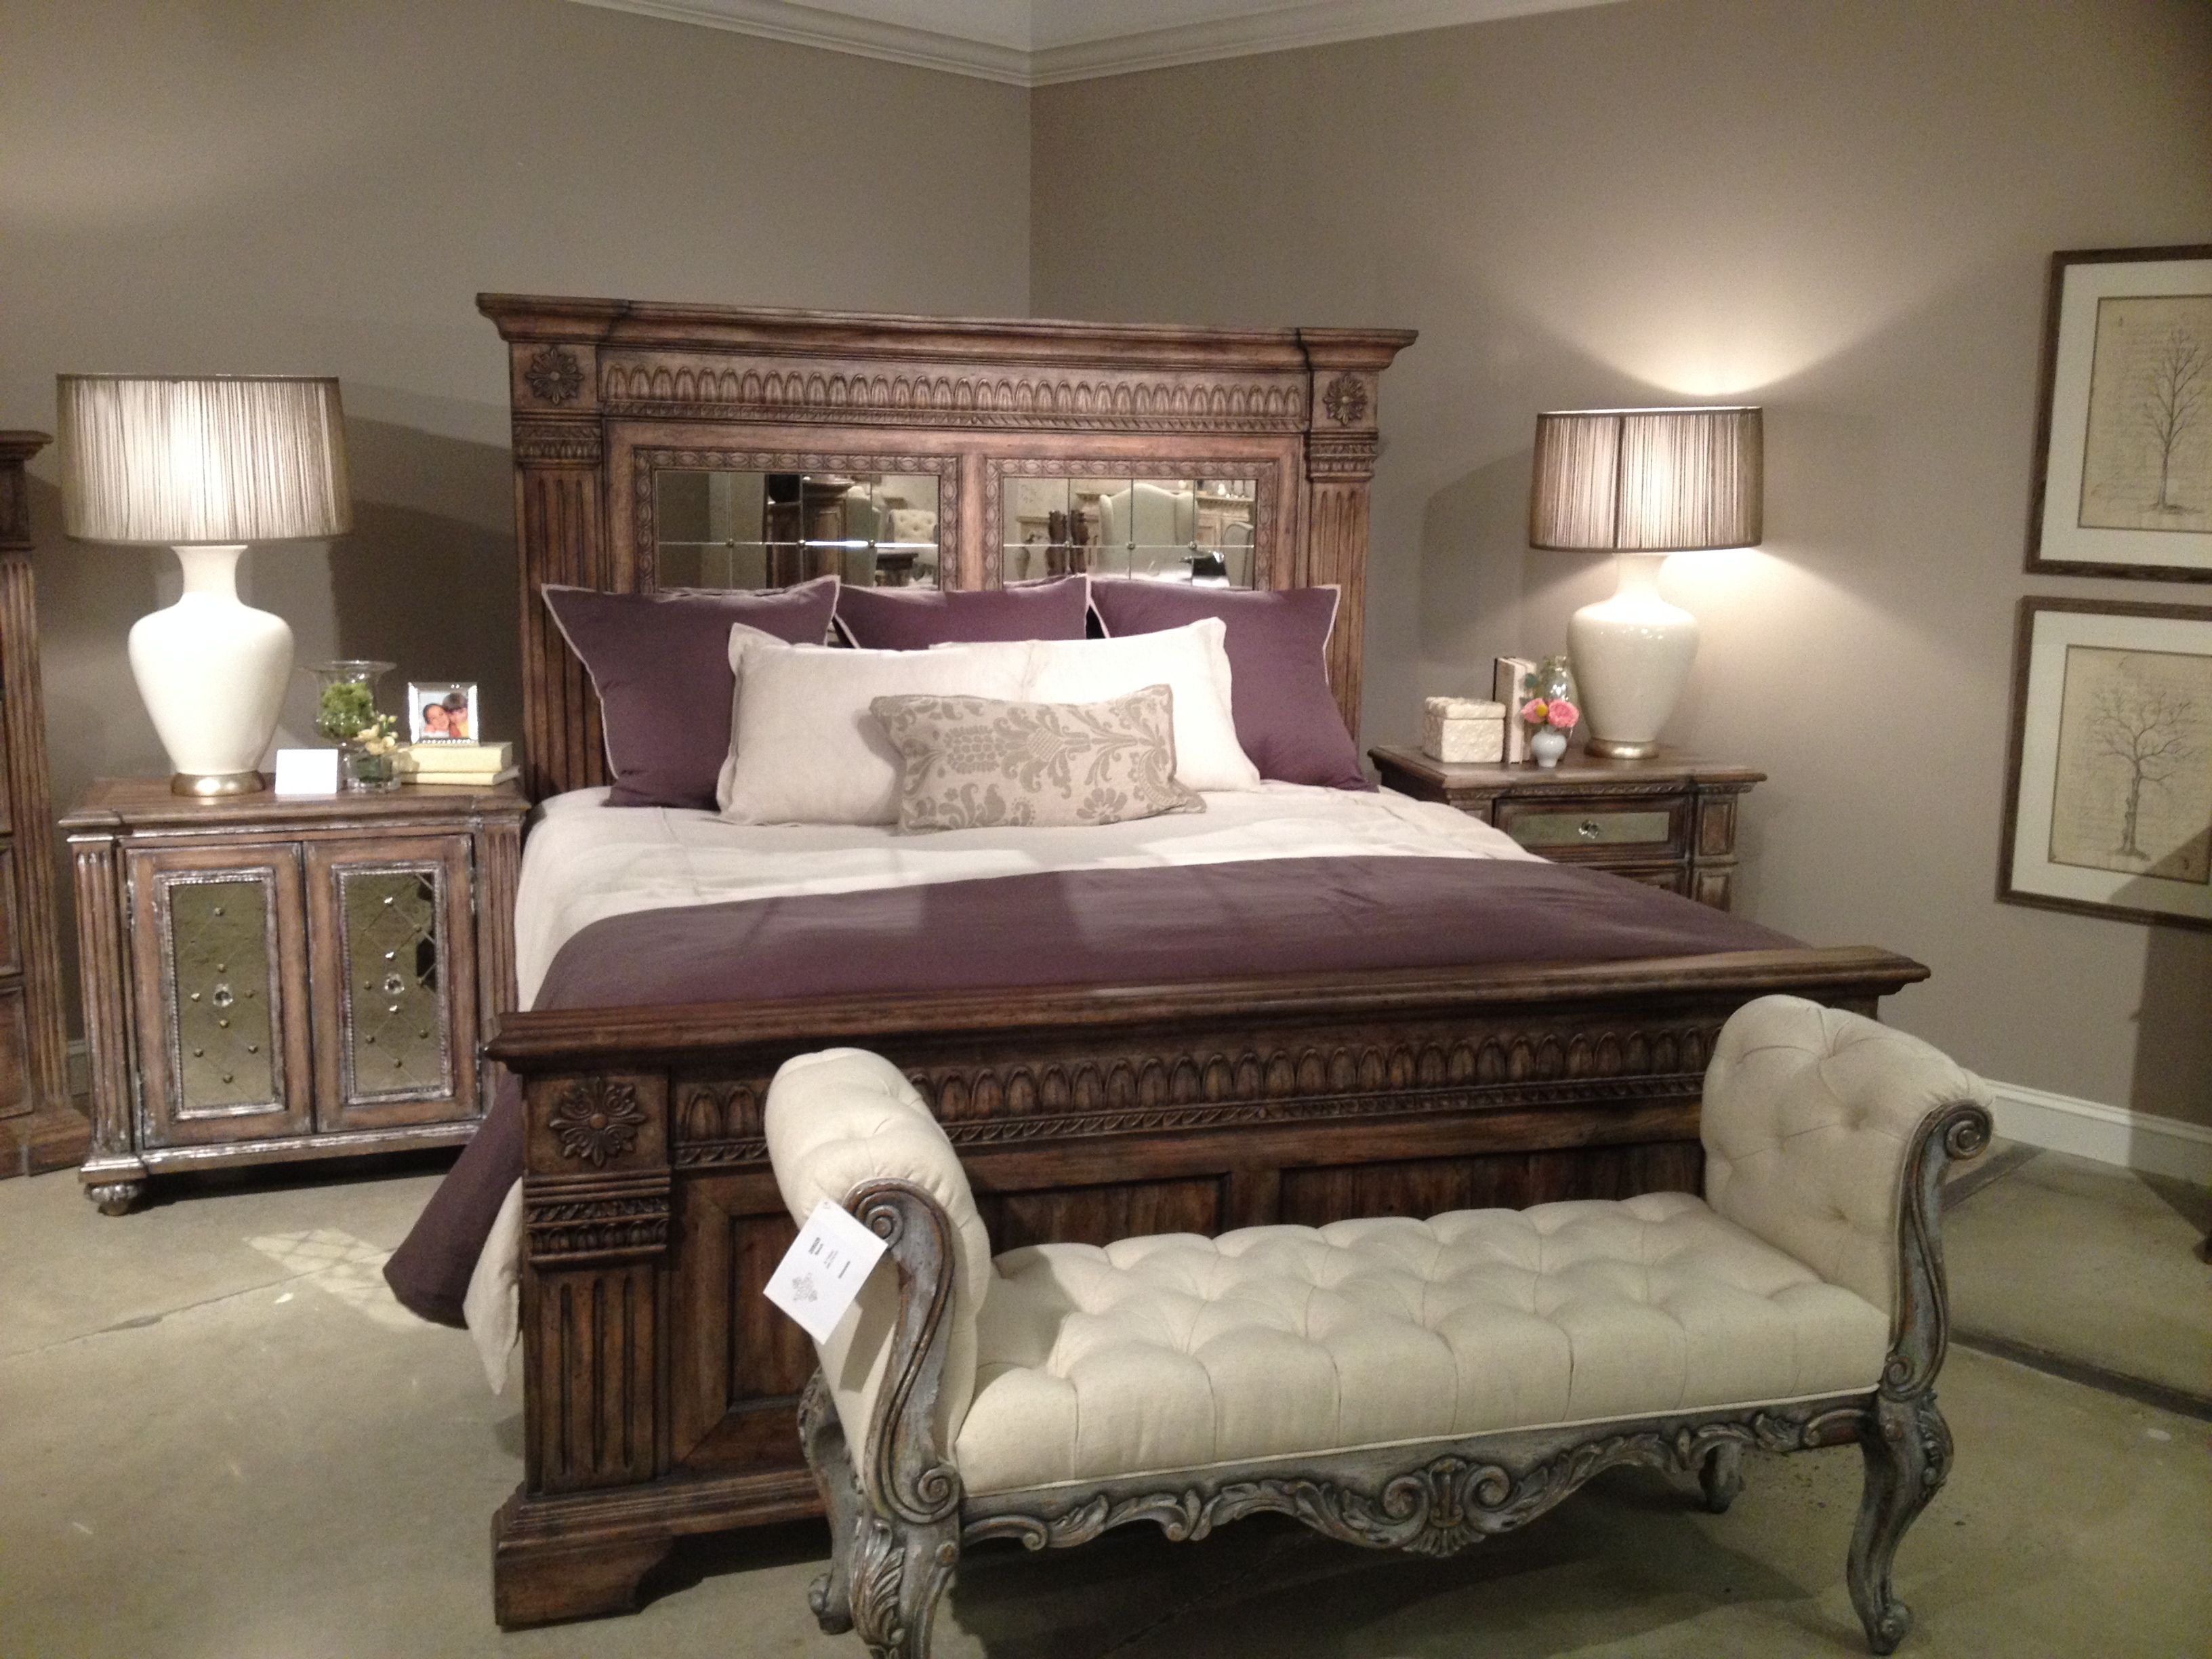 The Kentshire Bedroom Set From Accentrics Home By Pulaski